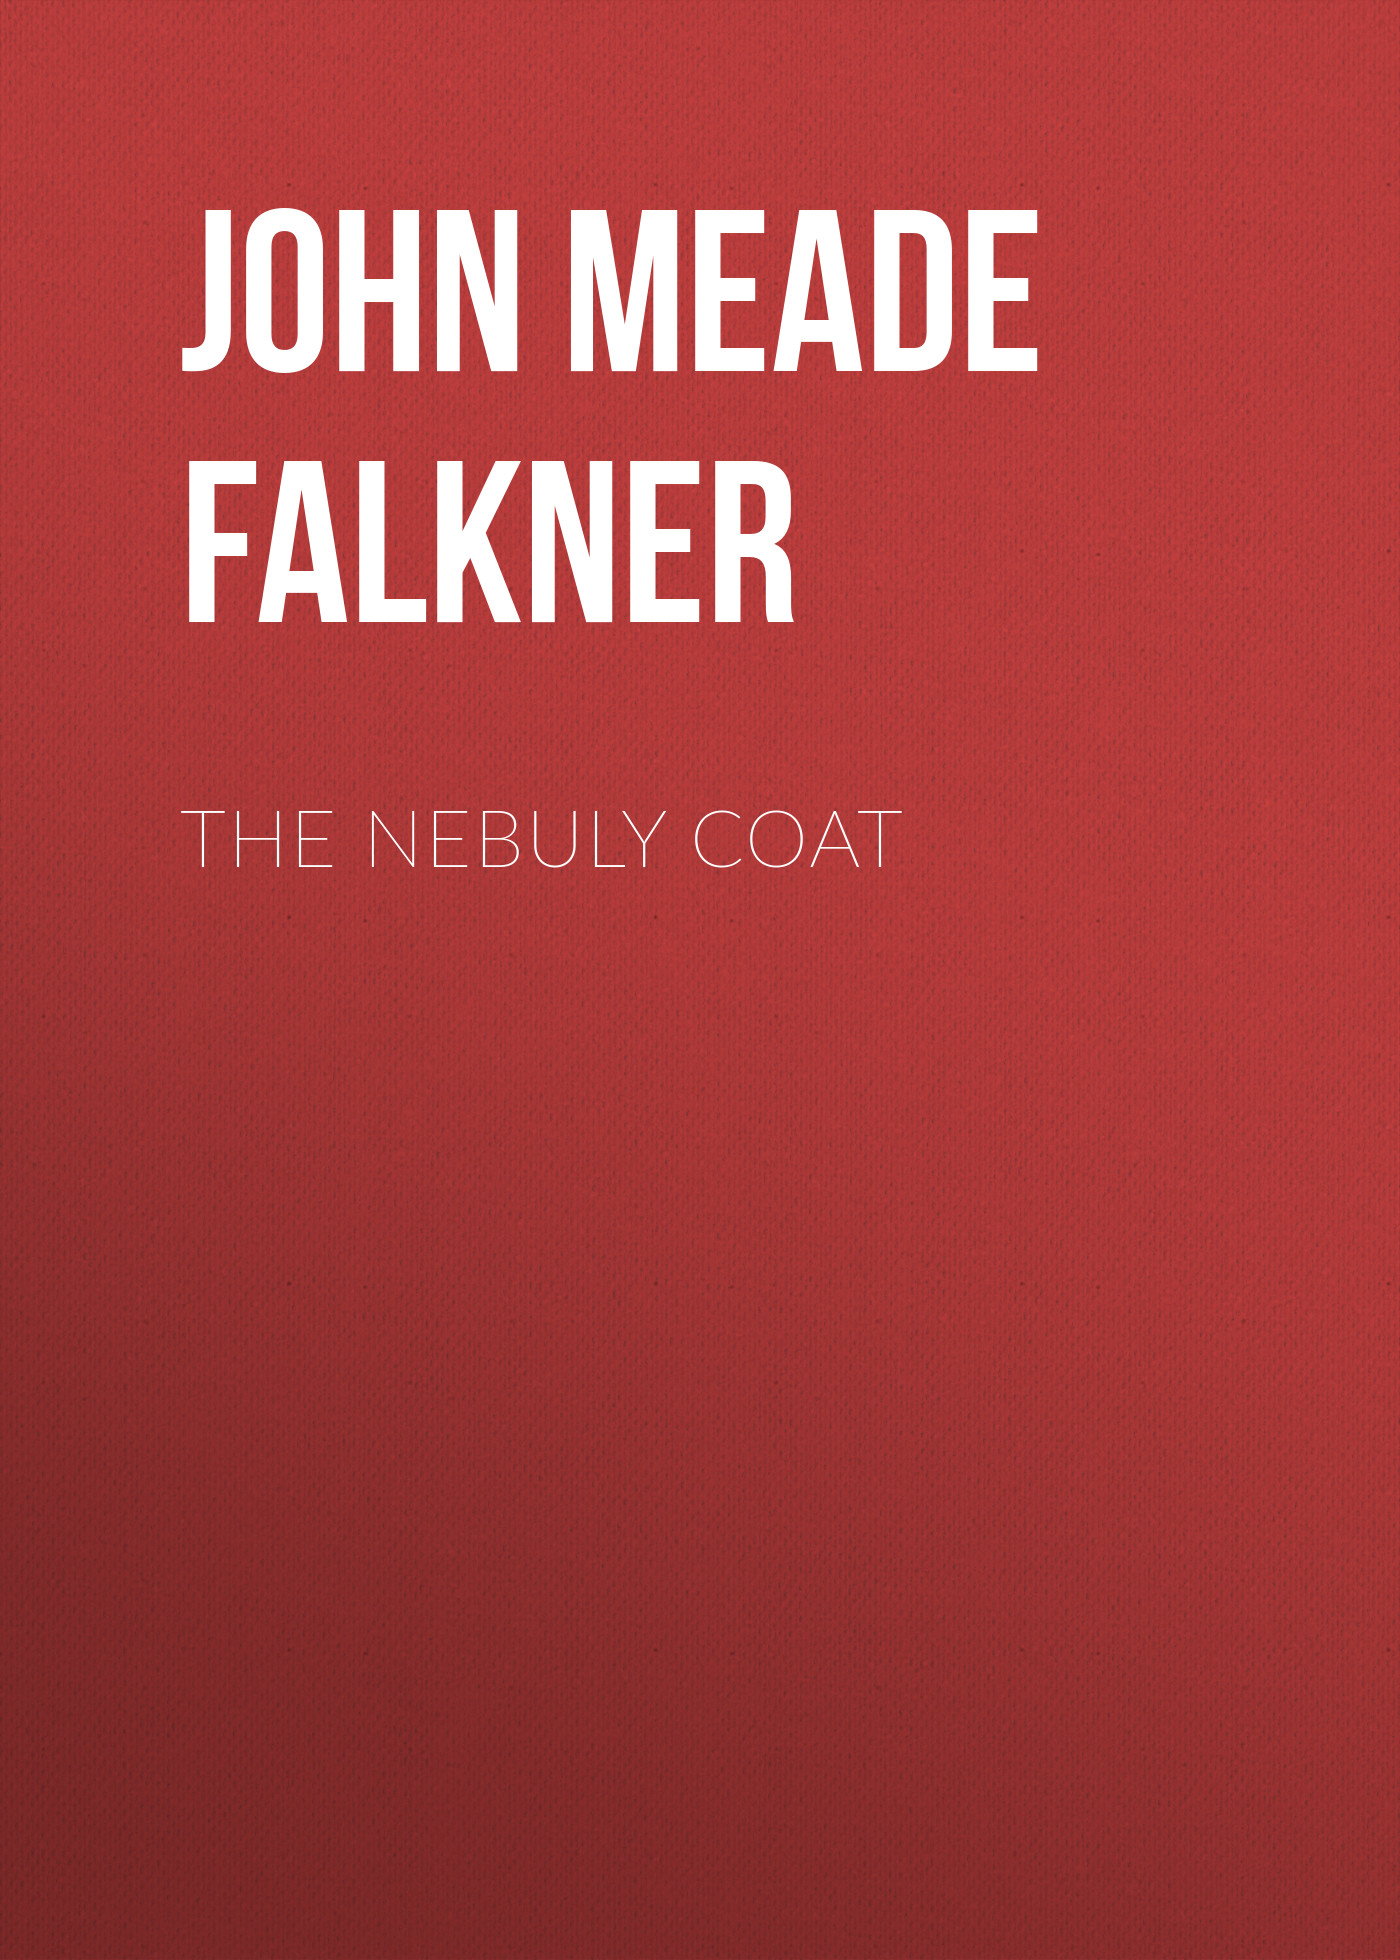 John Meade Falkner The Nebuly Coat зрительная труба meade wilderness 15–45x65